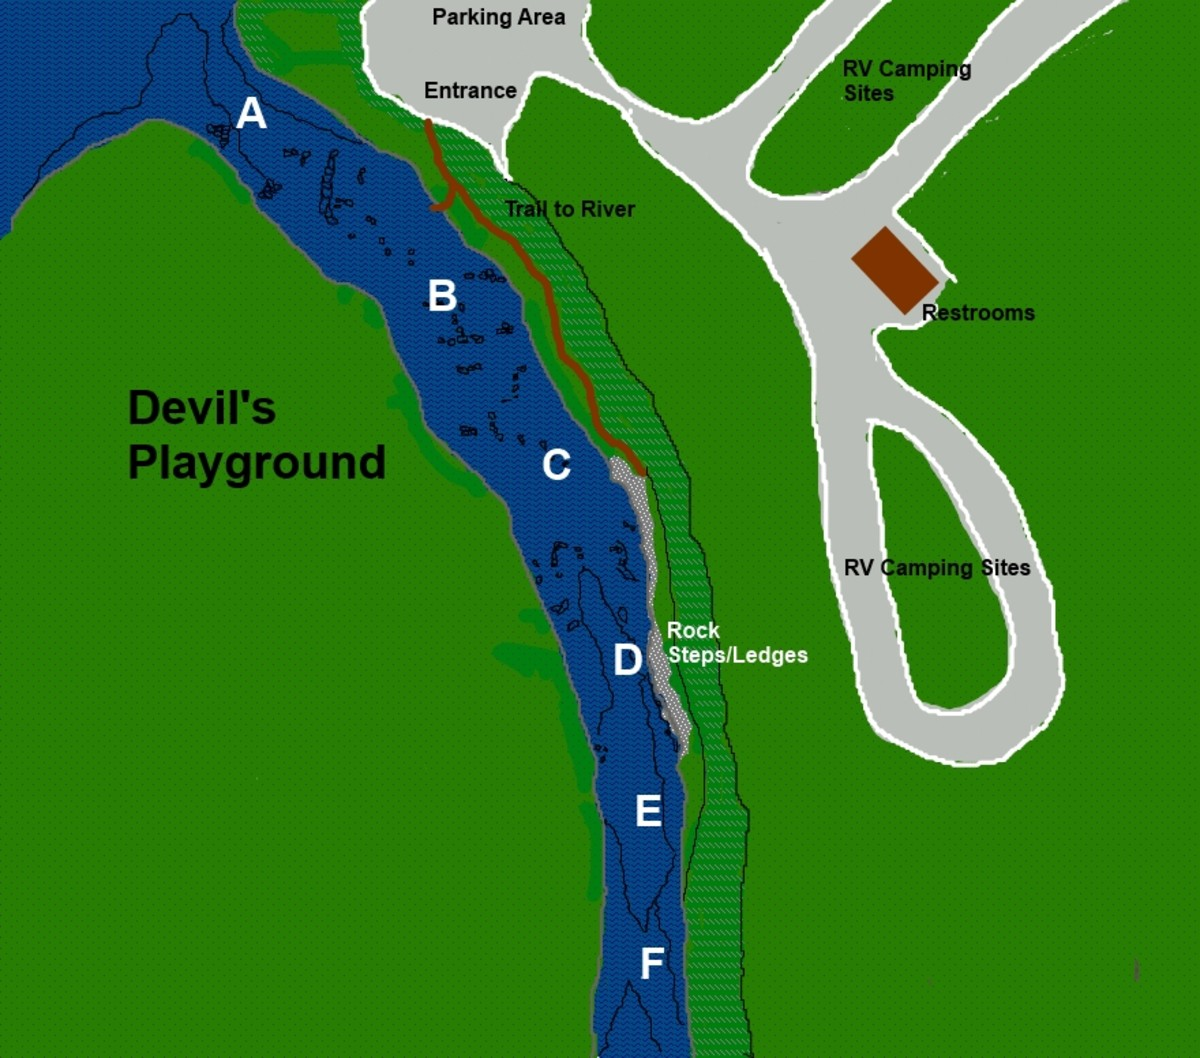 Devil's Playground - Suggested Areas to Fish